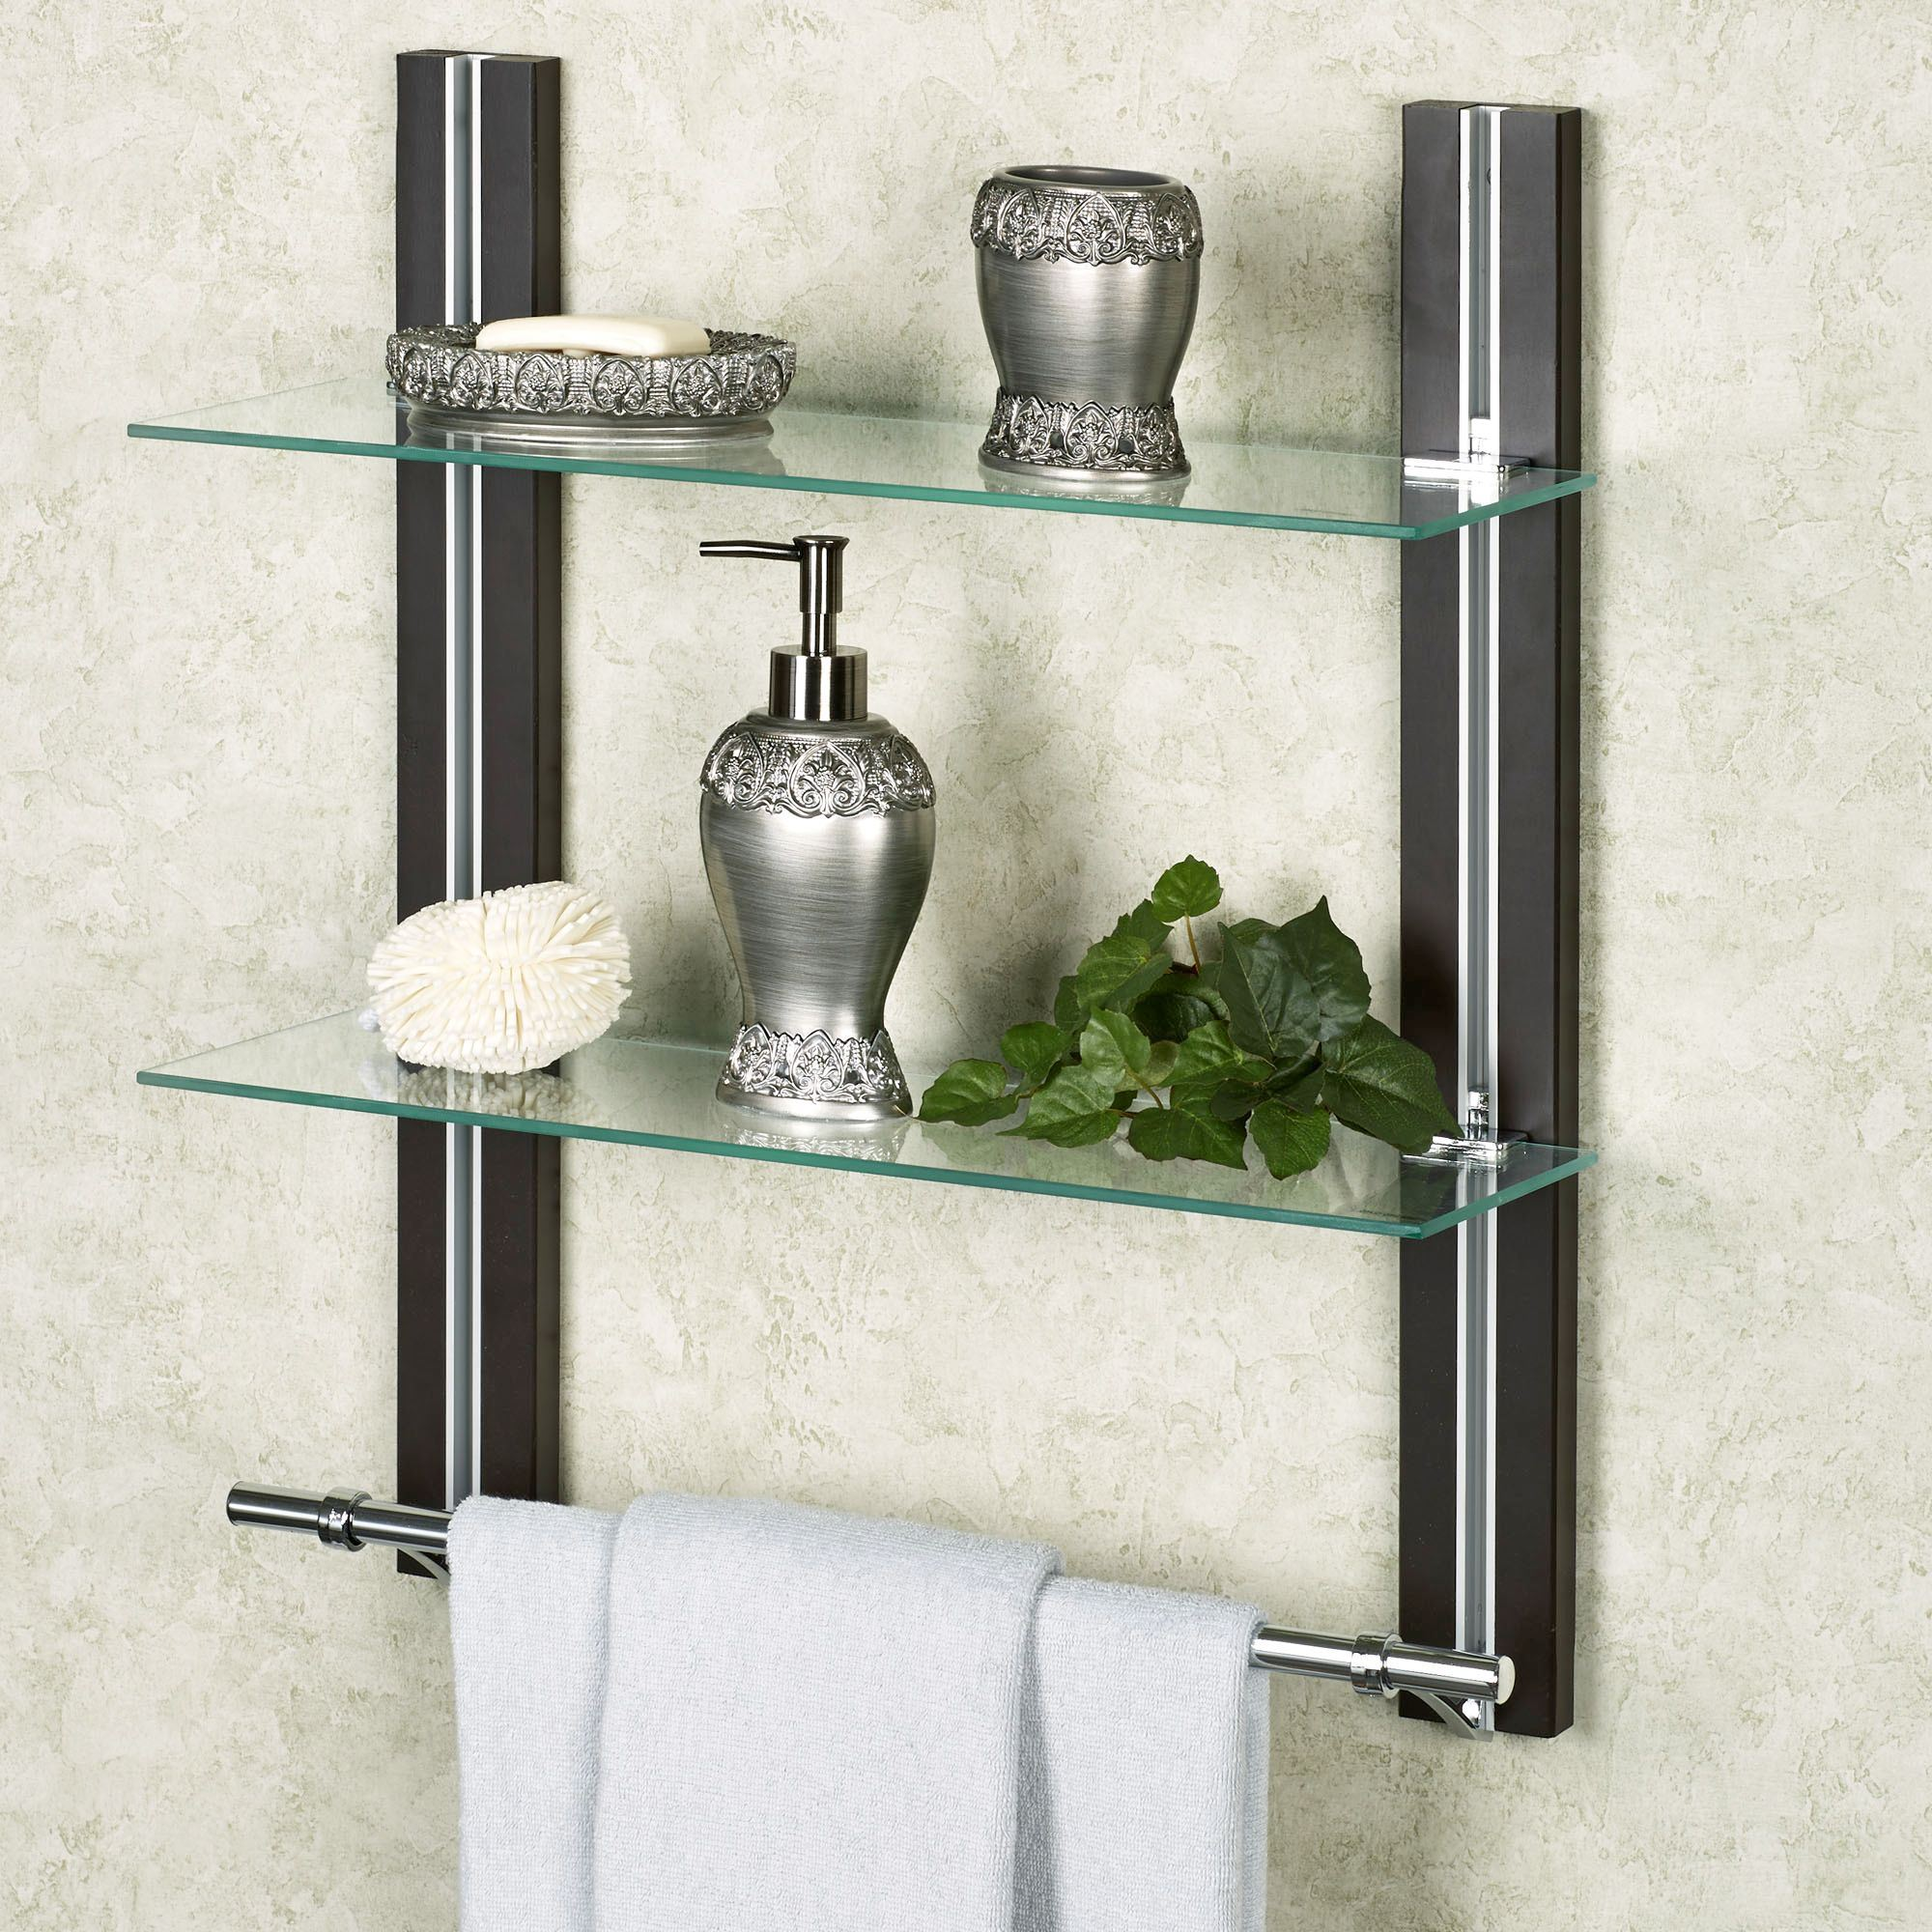 Delightful ... Shelf With Towel Bar Espresso. Touch To Zoom